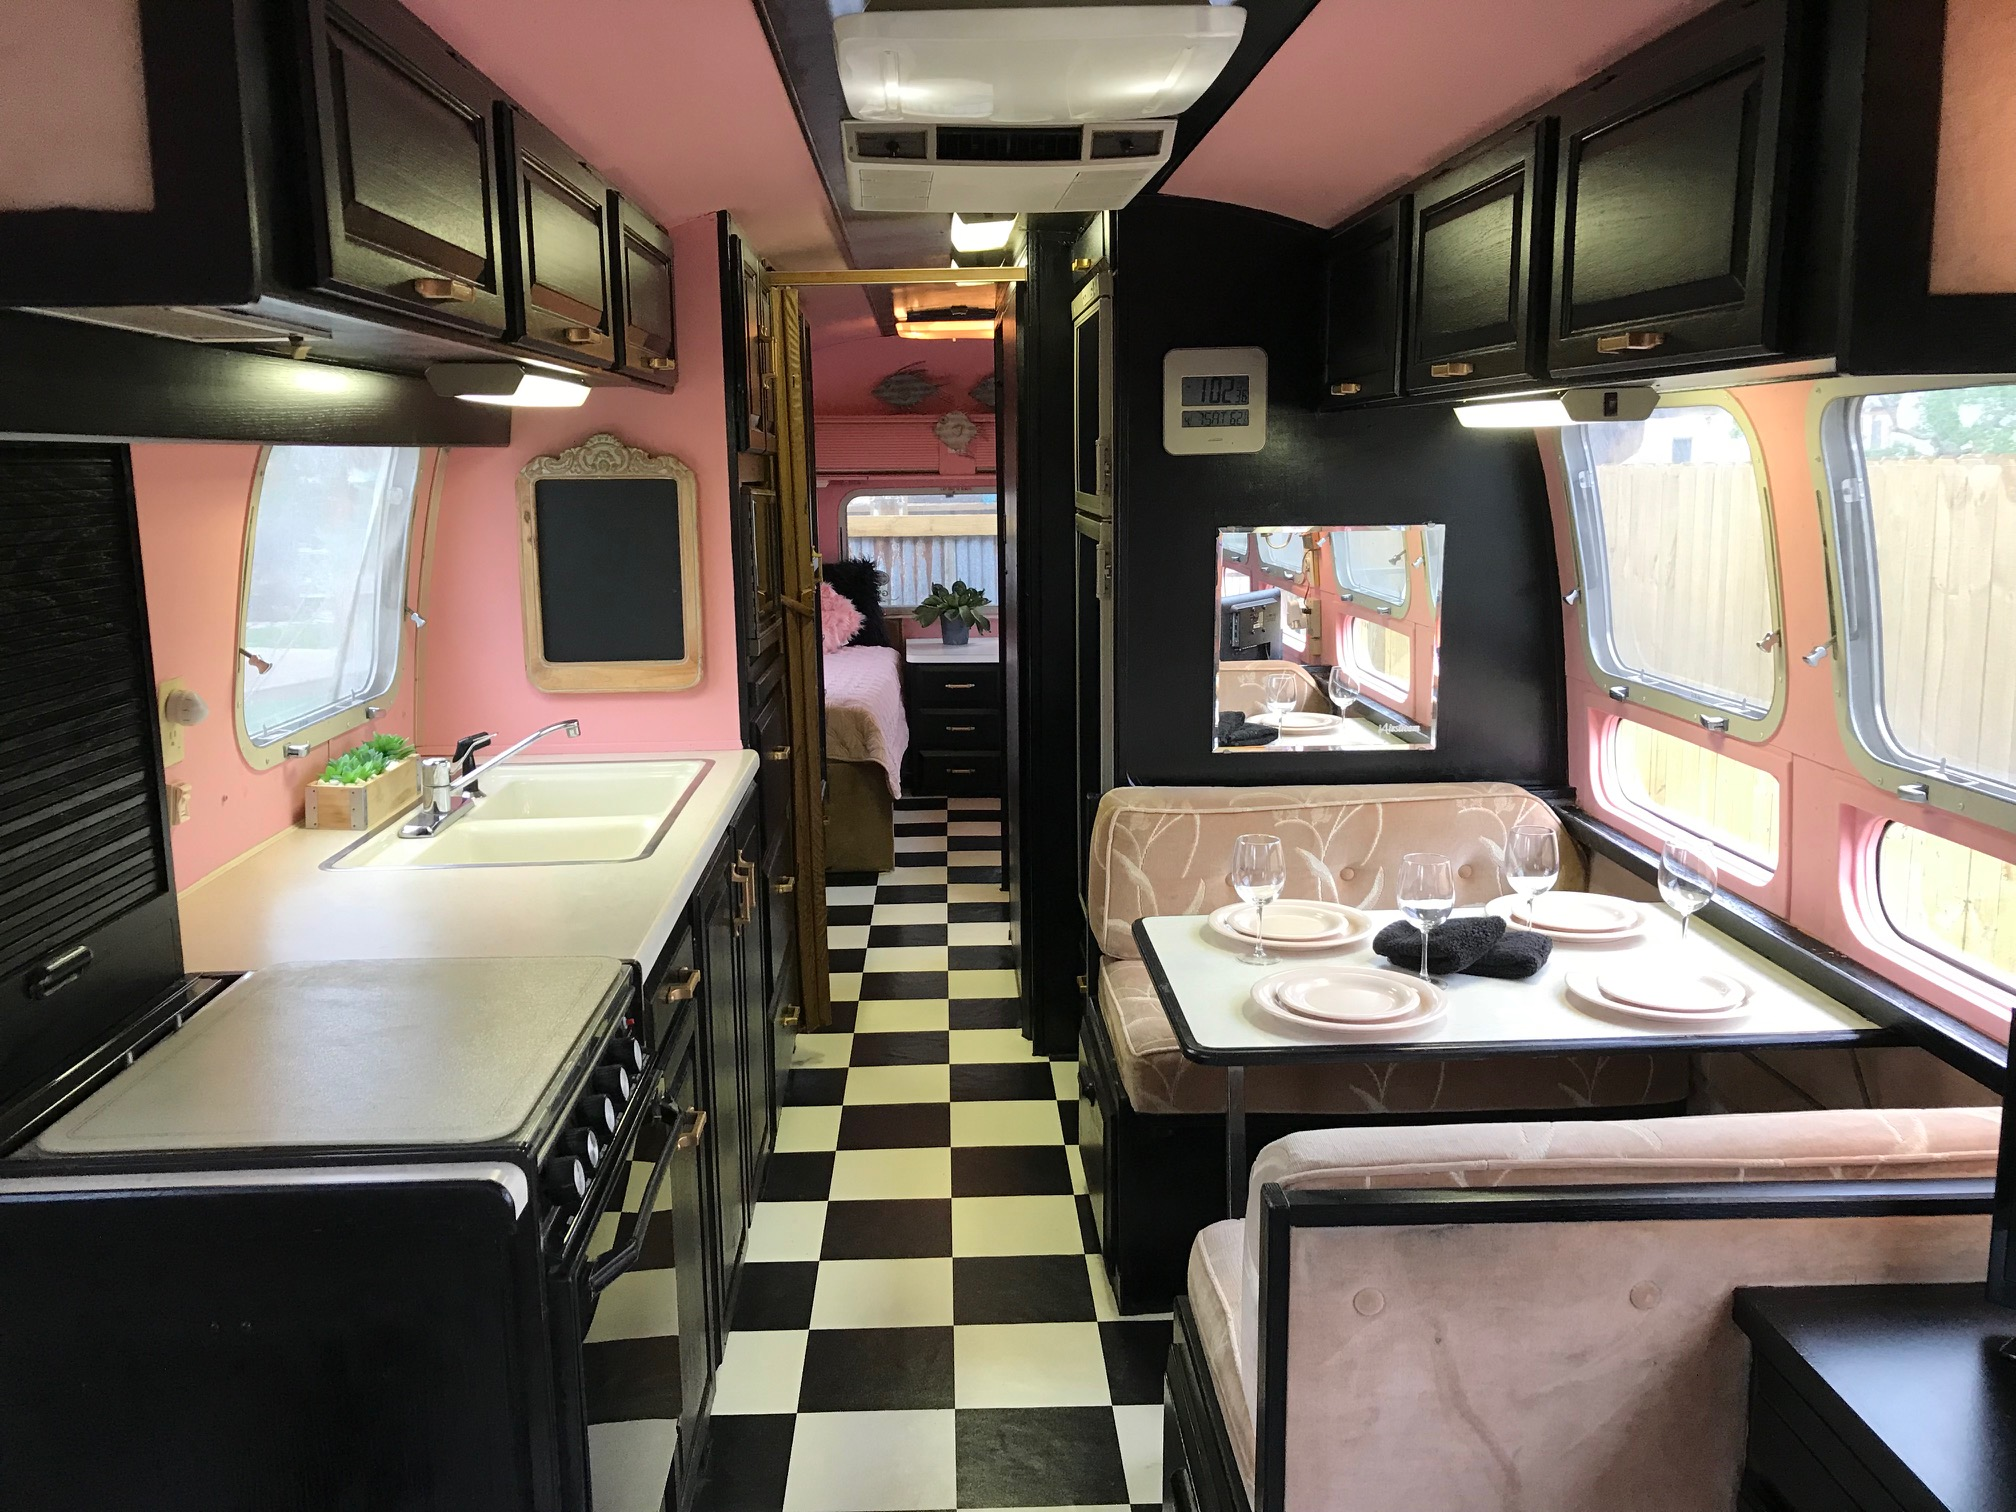 THE BIG CHILL The largest of our fleet. She's a 1985 retro vintage Airstream. You will love GLAMPING in this 80's decor!